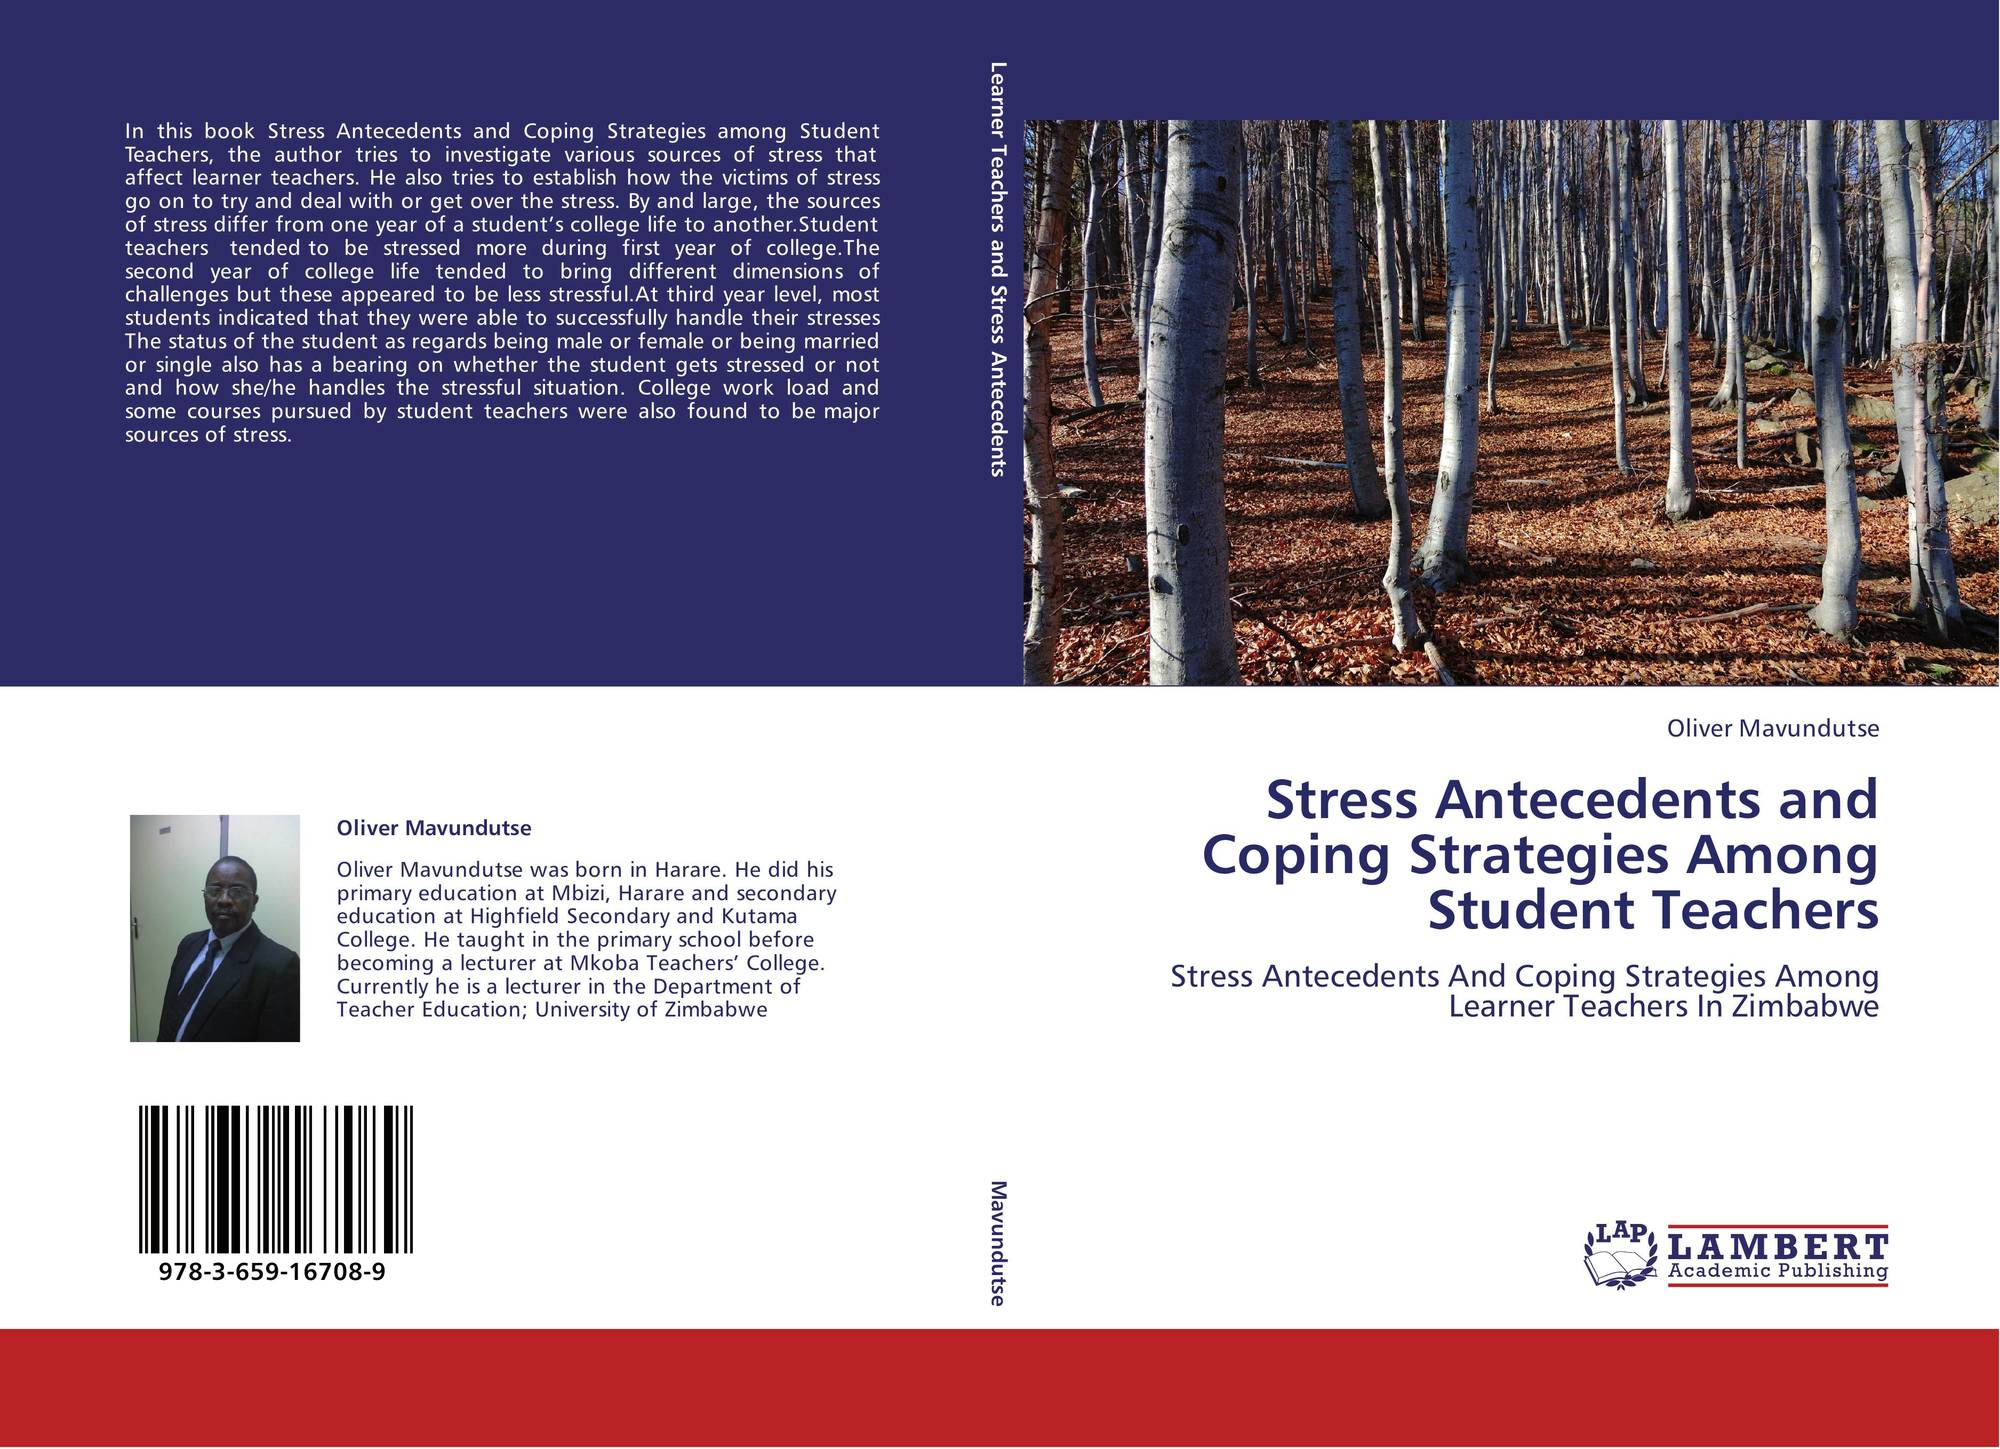 student and avoidance oriented coping strategy Printable version coping strategies summary prepared by shelley taylor in collaboration with the psychosocial working group last revised july, 1998.